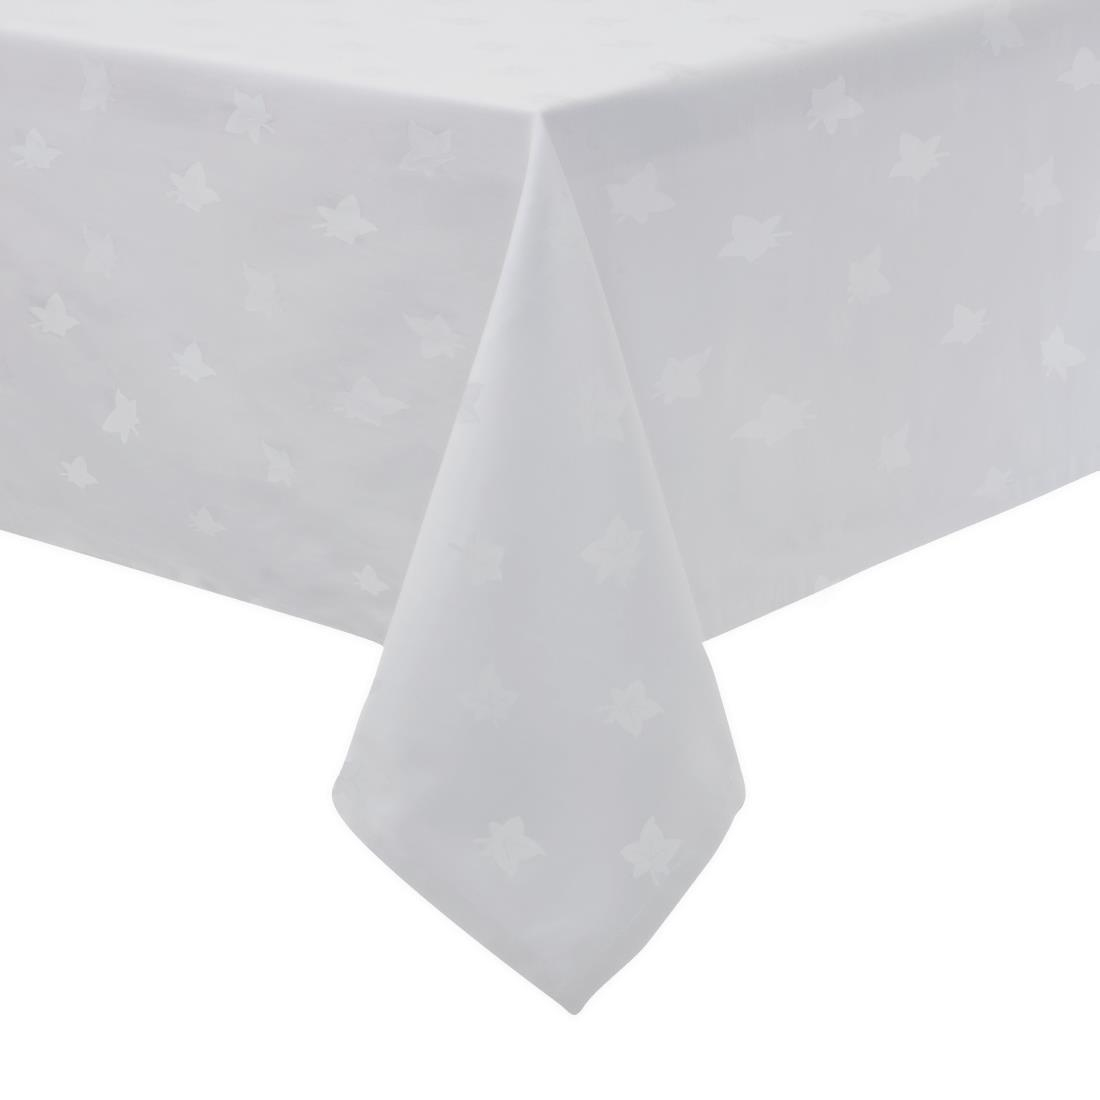 Image of Mitre Luxury Luxor Tablecloth Ivy Leaf White 1150 x 1150mm